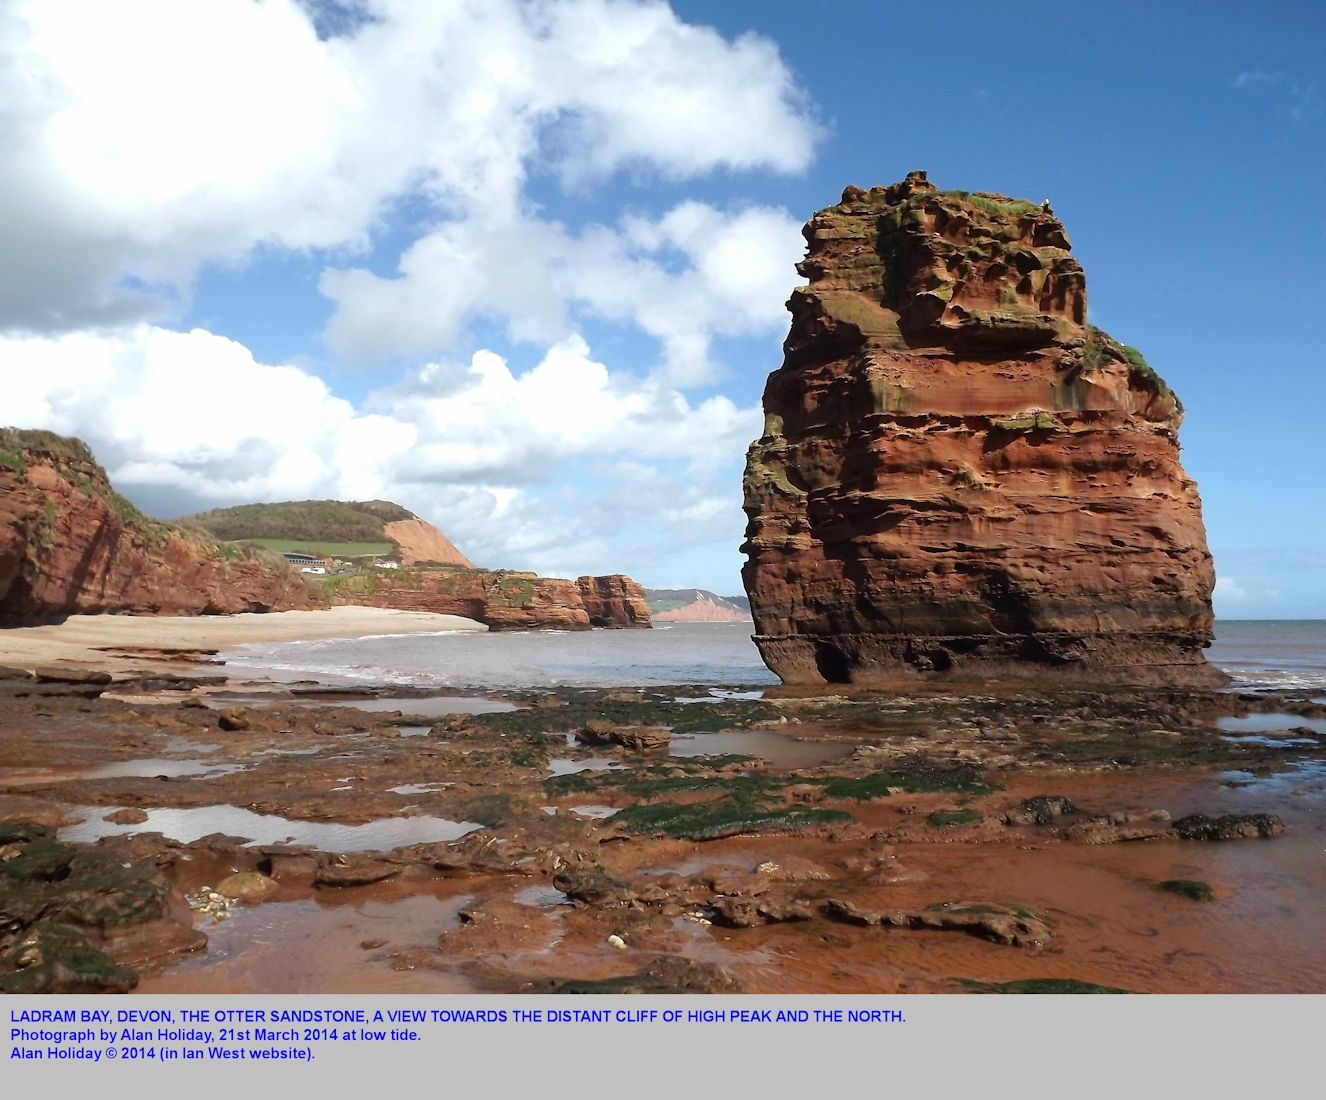 Ladram Bay, near Sidmouth, Devon, in the Triassic Otter Sandstone, as seen from the stack in southern part of the bay at low tide, 21st March 2014, photograph by Alan Holiday